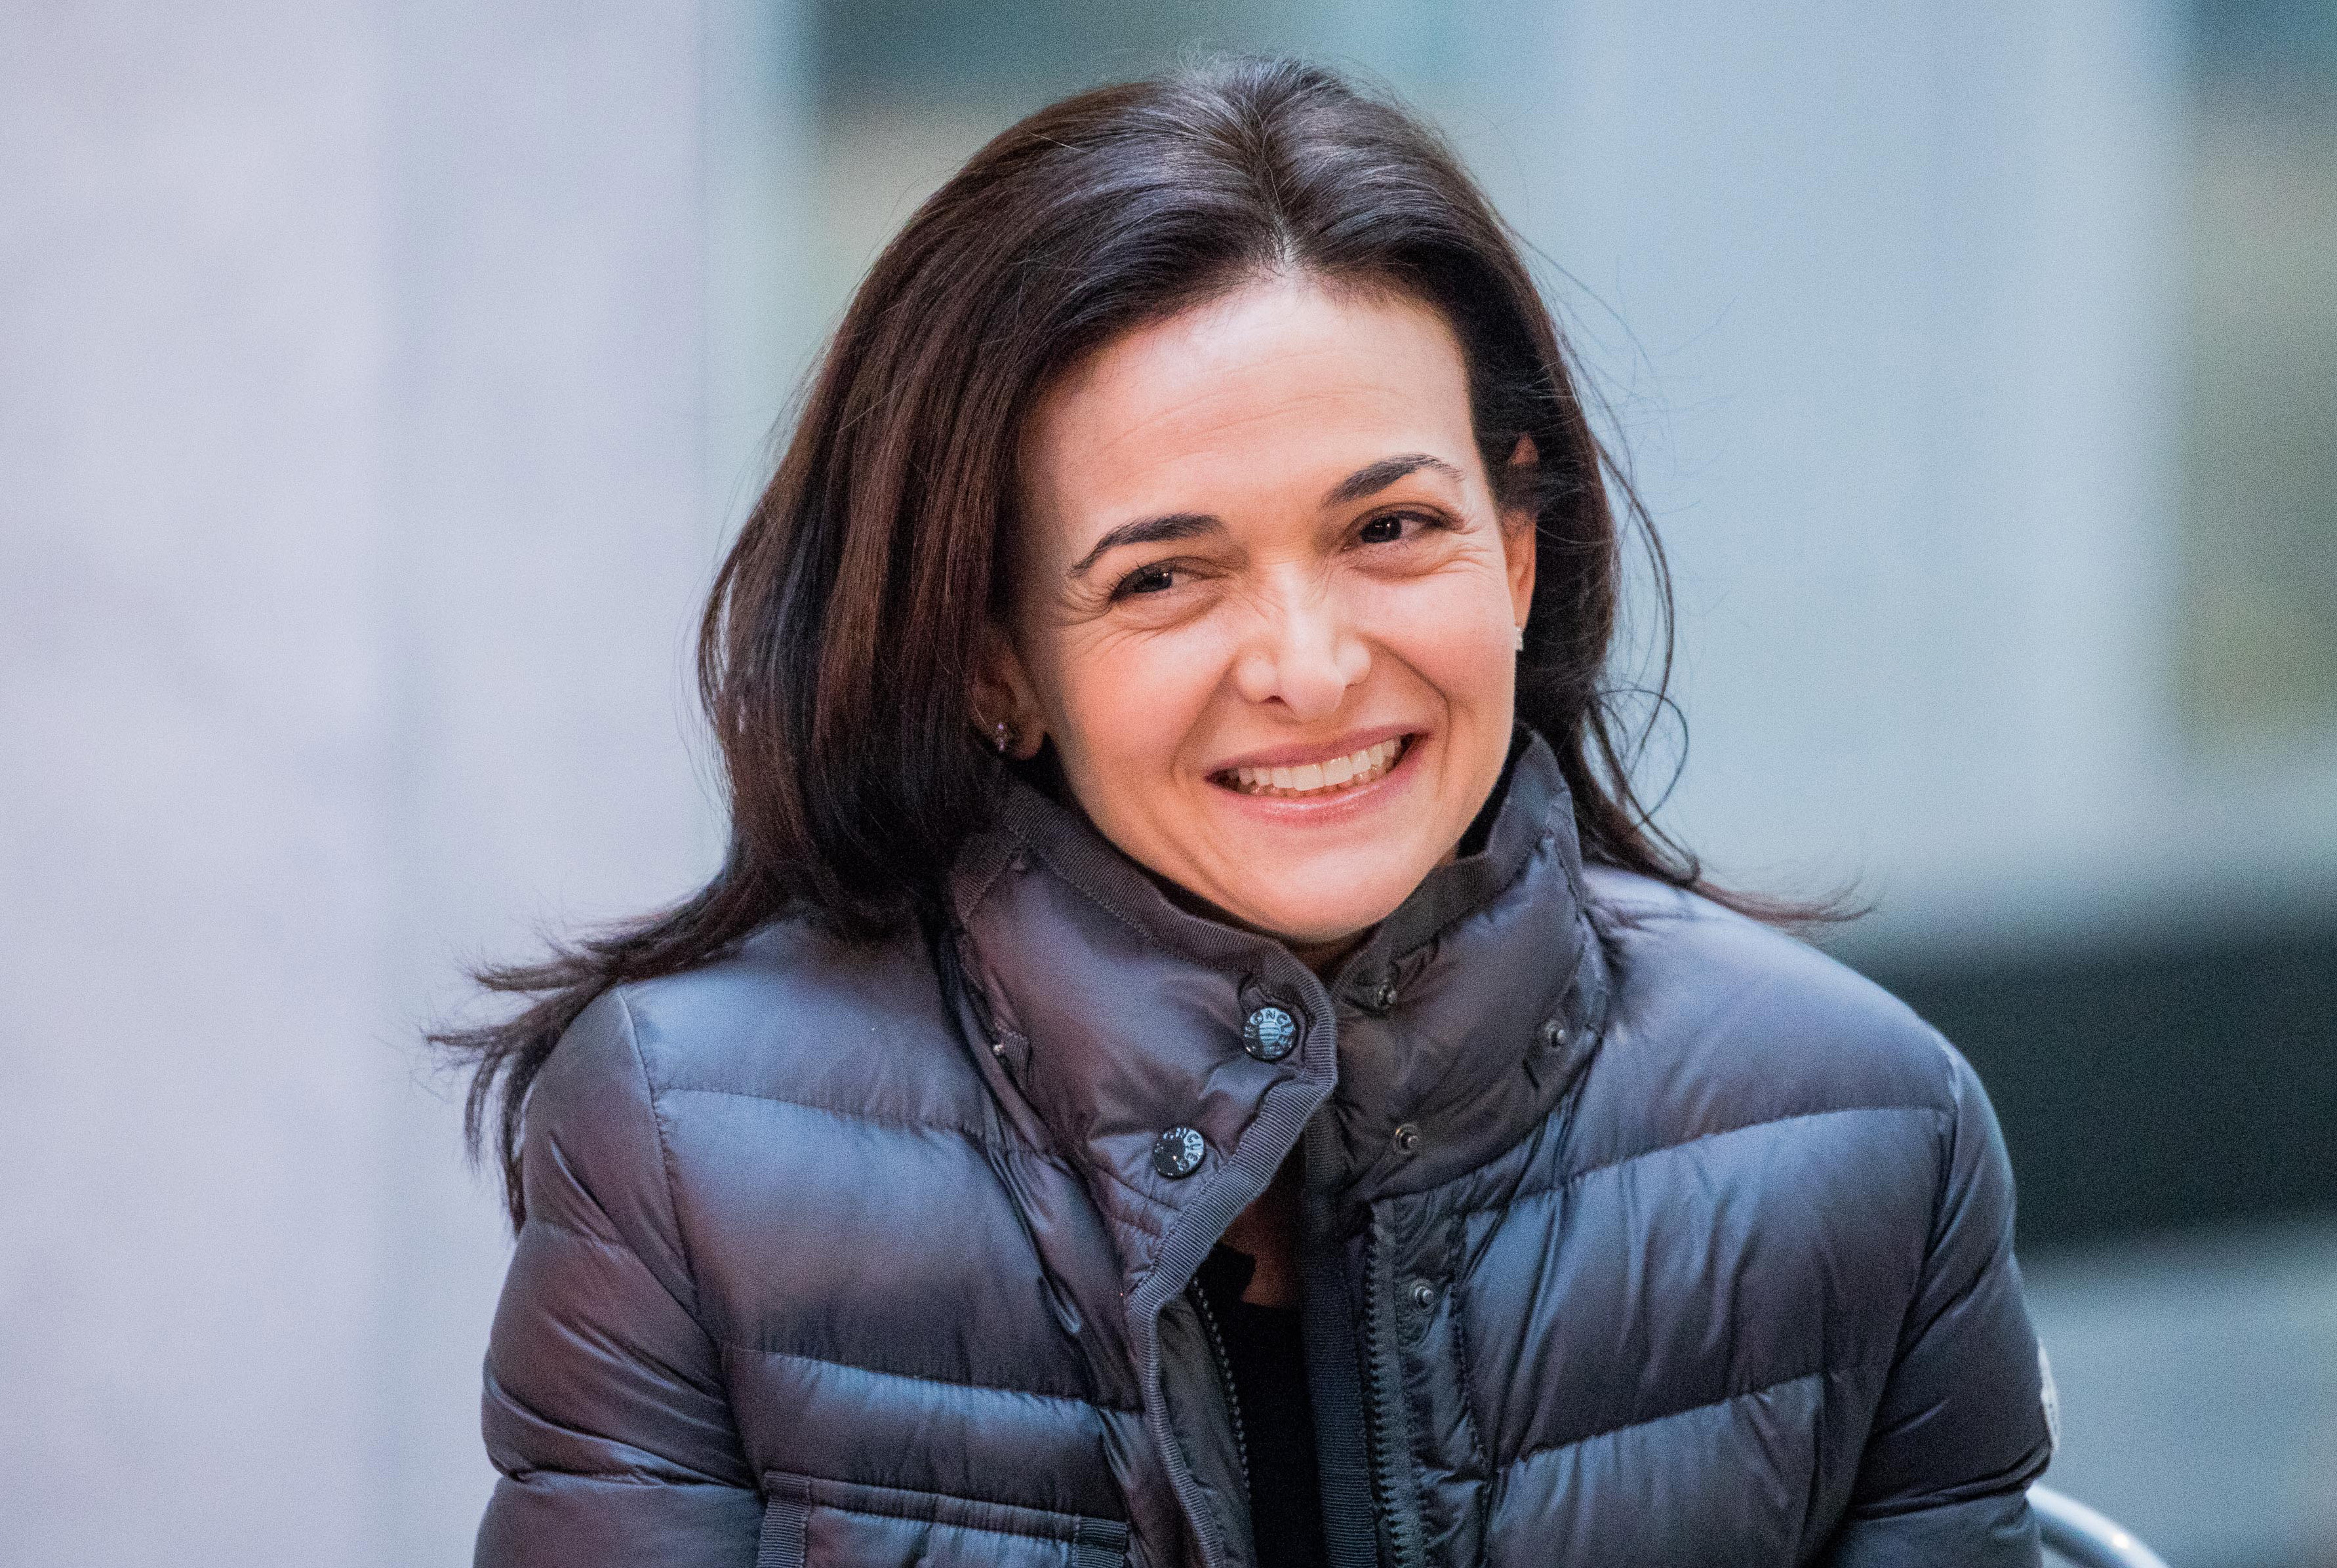 Sheryl Sandberg, chief operating officer of Facebook Inc., reacts during a news conference at Station F, a mega-campus for startups located inside a former freight railway depot, in Paris, France, on Tuesday, Jan. 17, 2017.